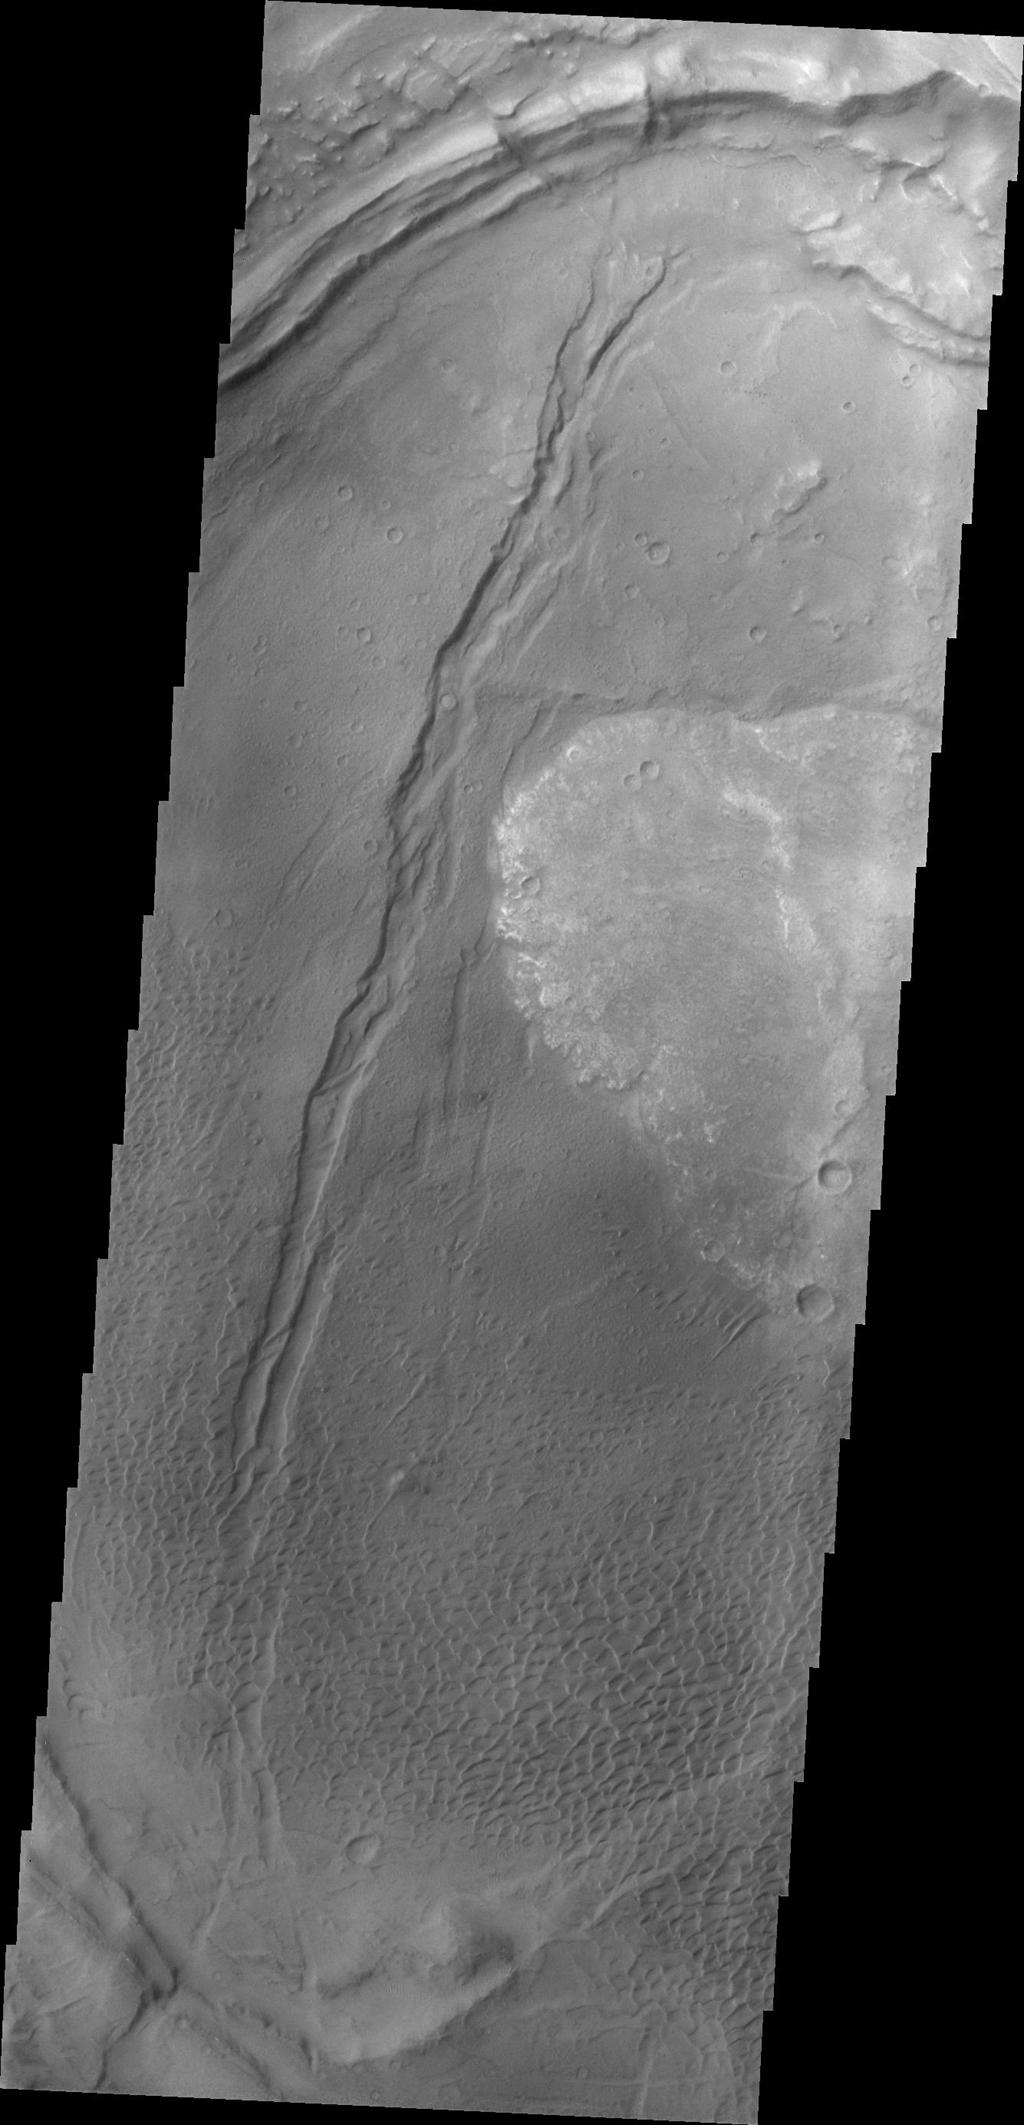 Dunes appear on the floor of Nili Patera, one of the two volcanic calderas of Syrtis Major in this image taken by NASA's 2001 Mars Odyssey.